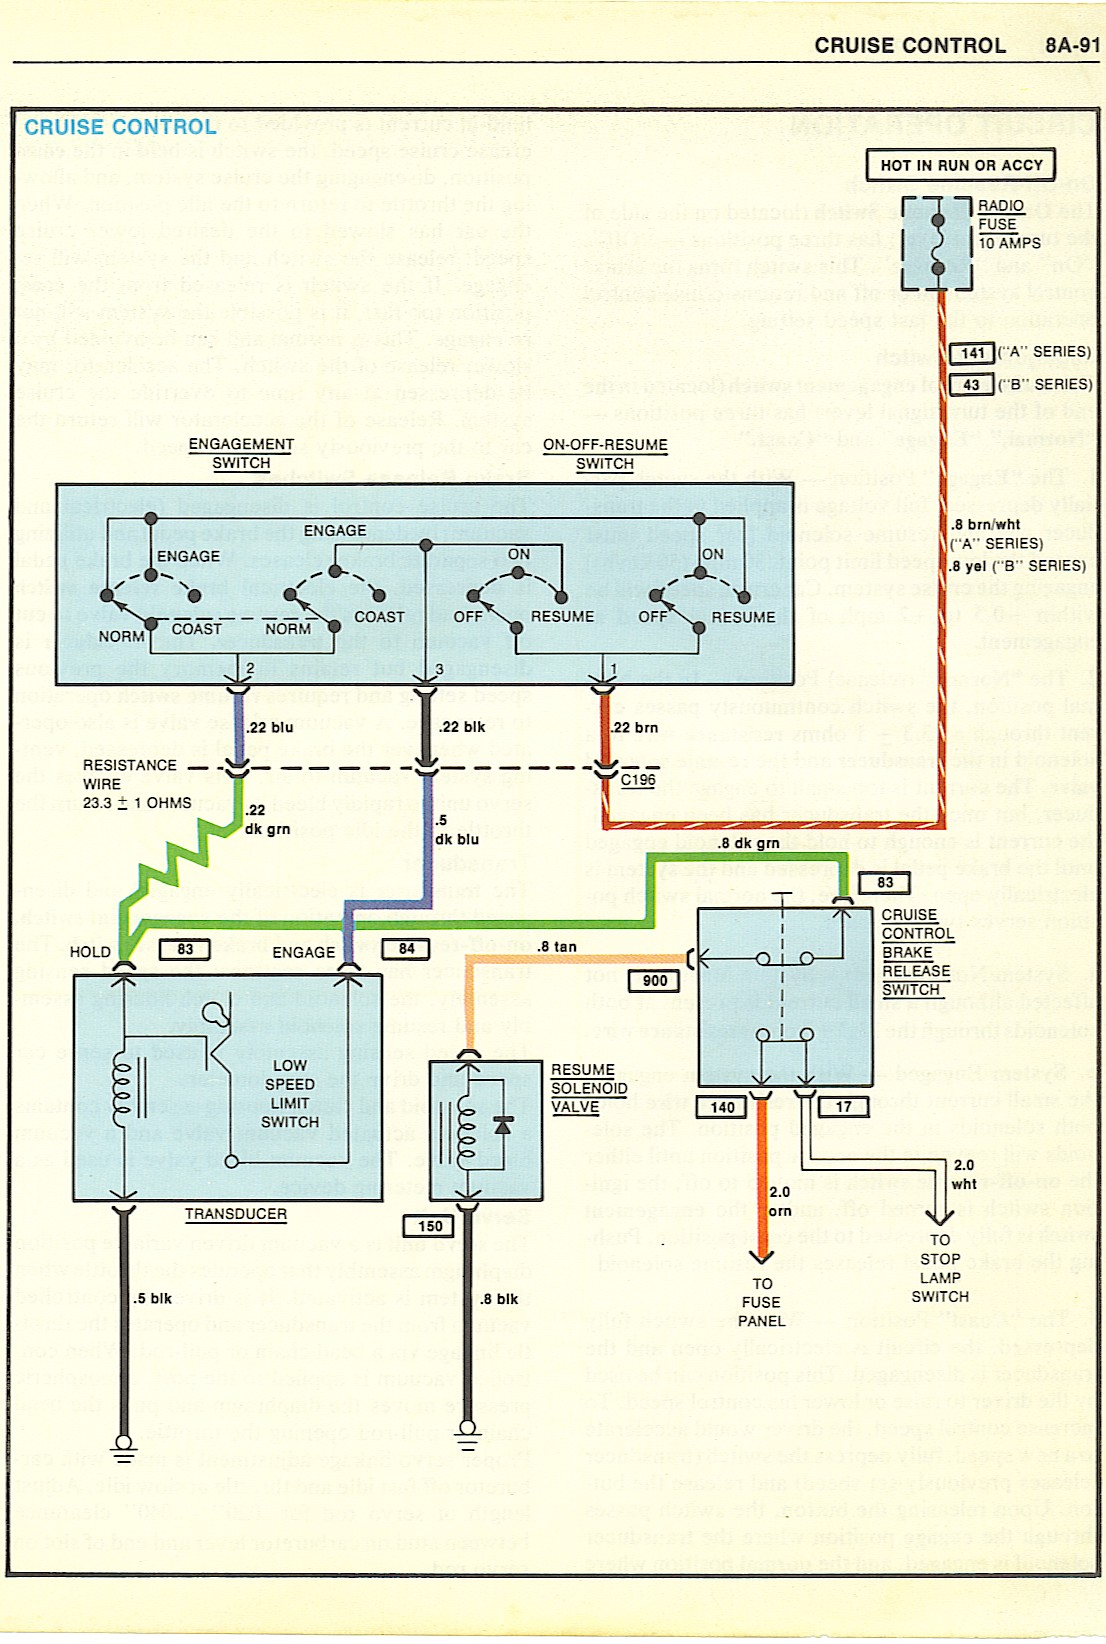 1999 Ford F350 Steering Column Wiring Diagram Block And Schematic 1970 Camaro Cruise Control Efcaviation Com 70 Chevy 72